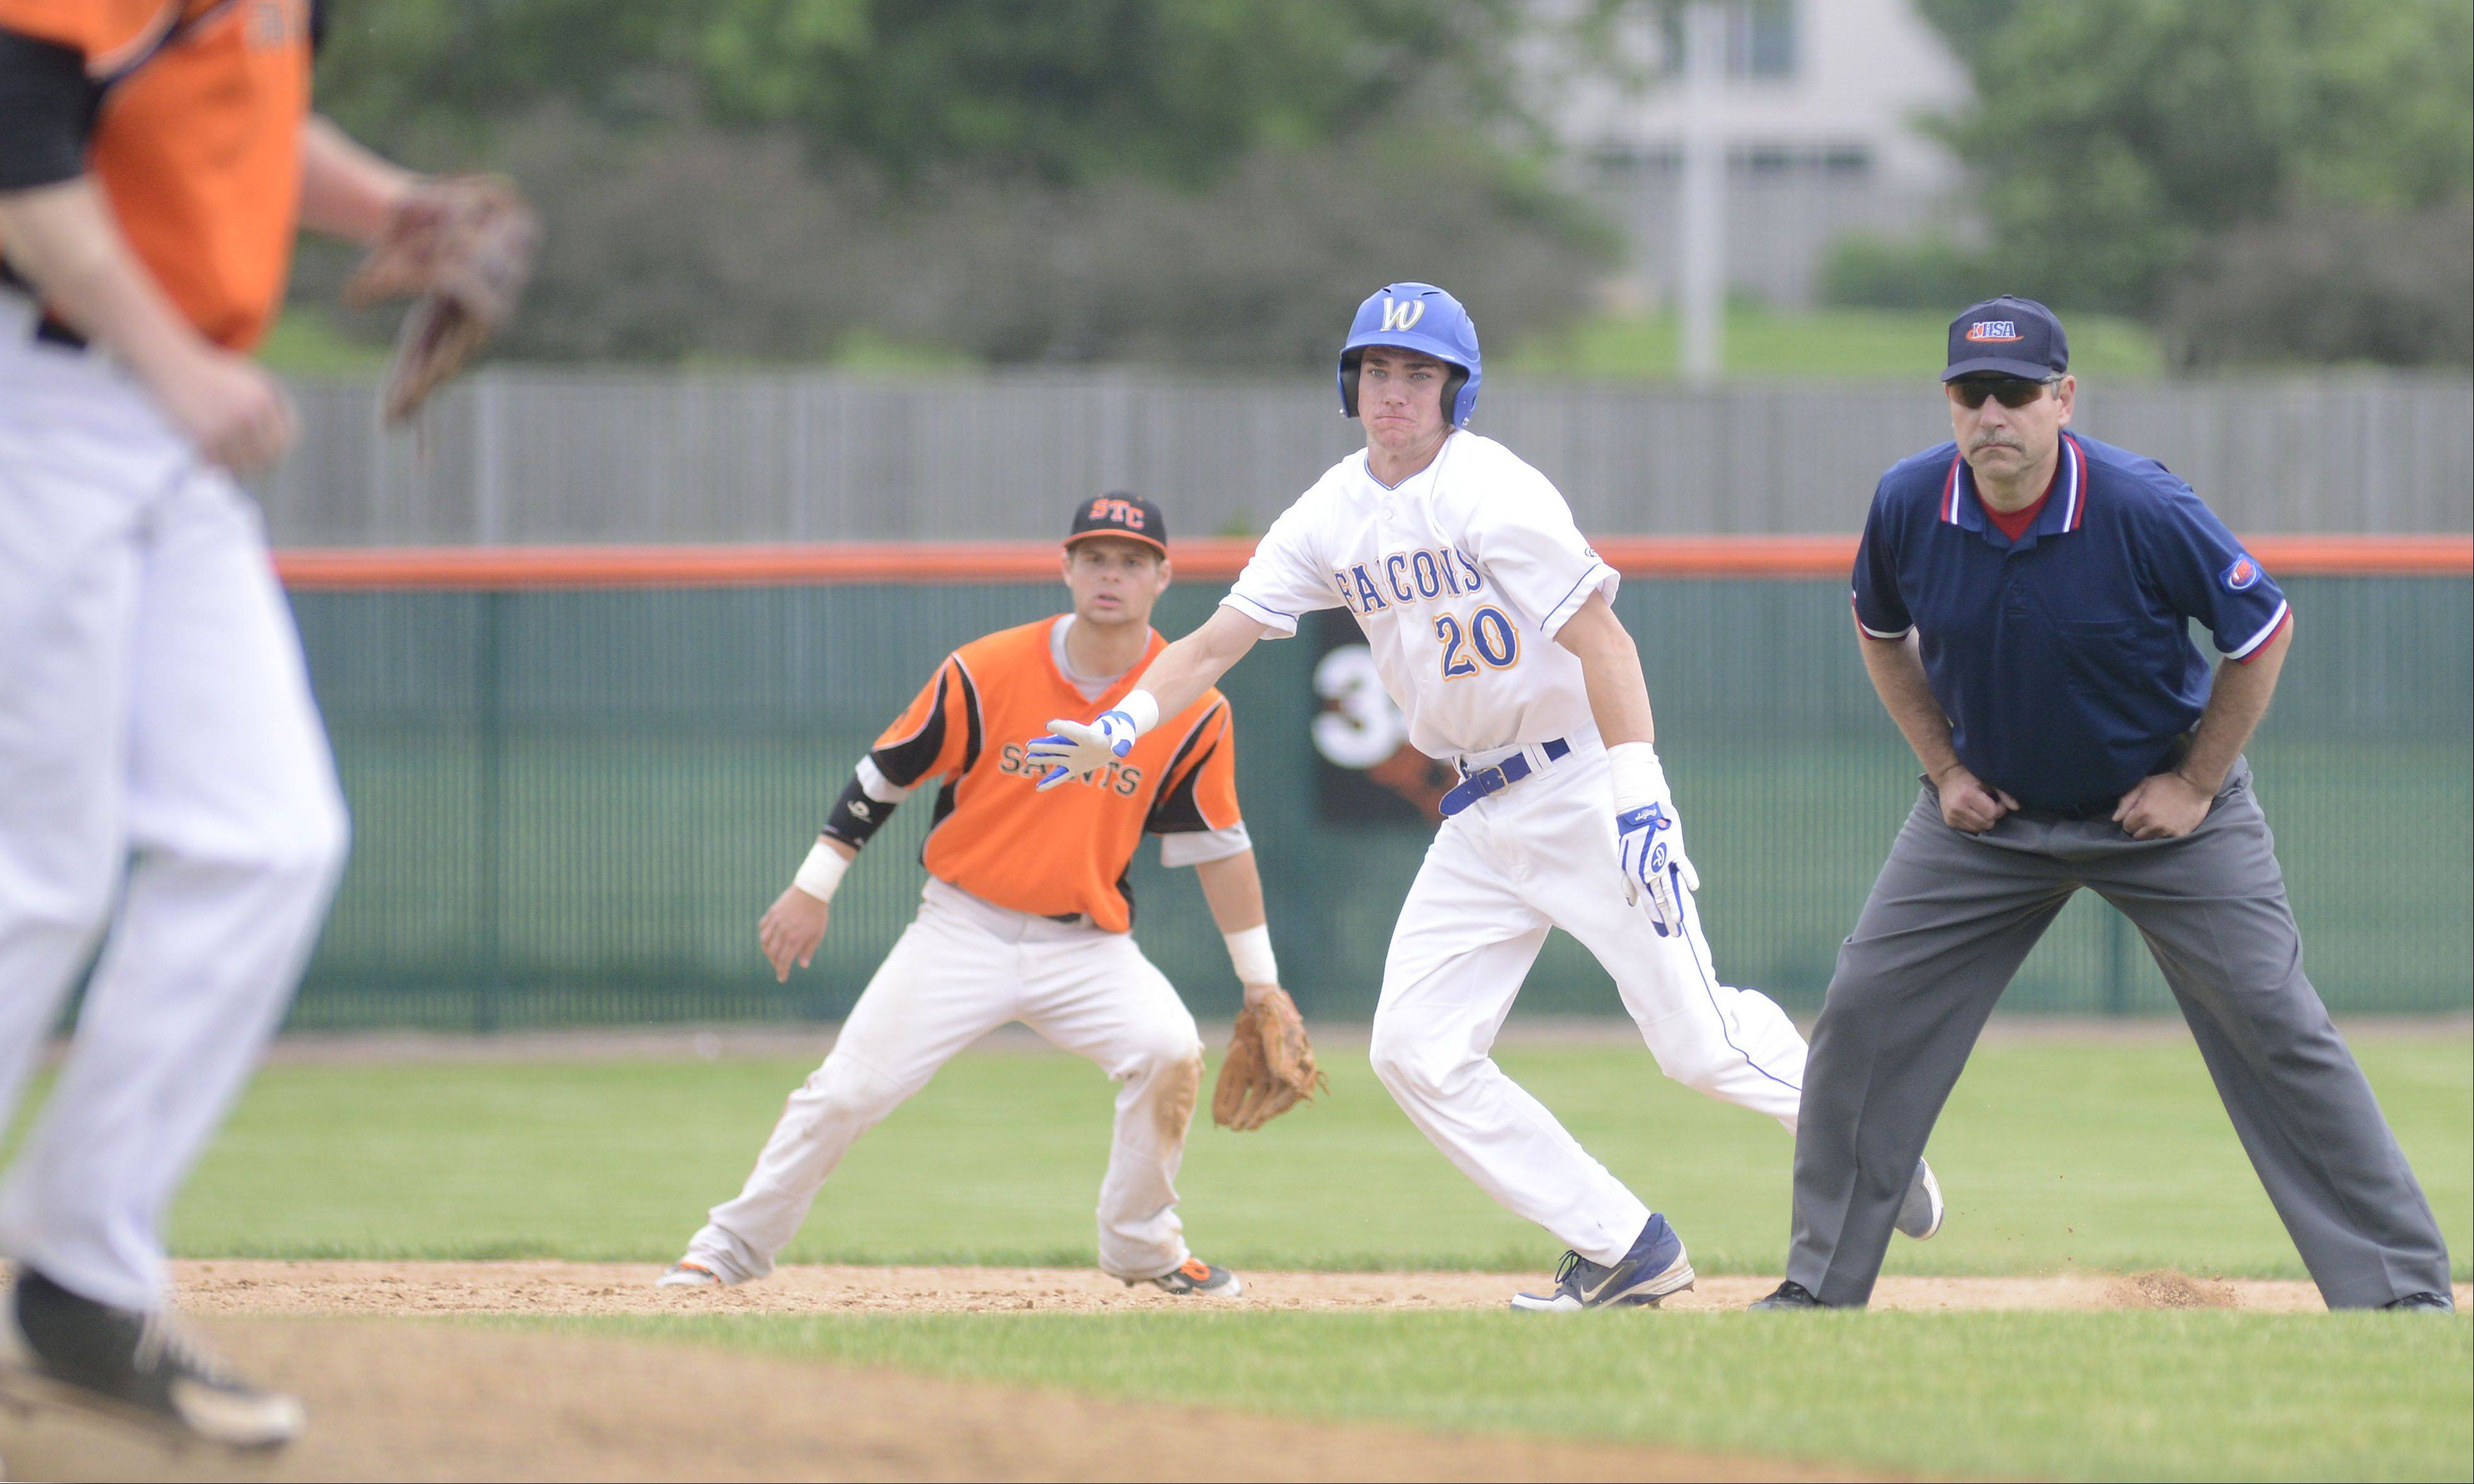 Wheaton North's Andrew Slivinski takes off from second base in the fifth inning of the Class 4A sectional championship on Saturday, June 1.